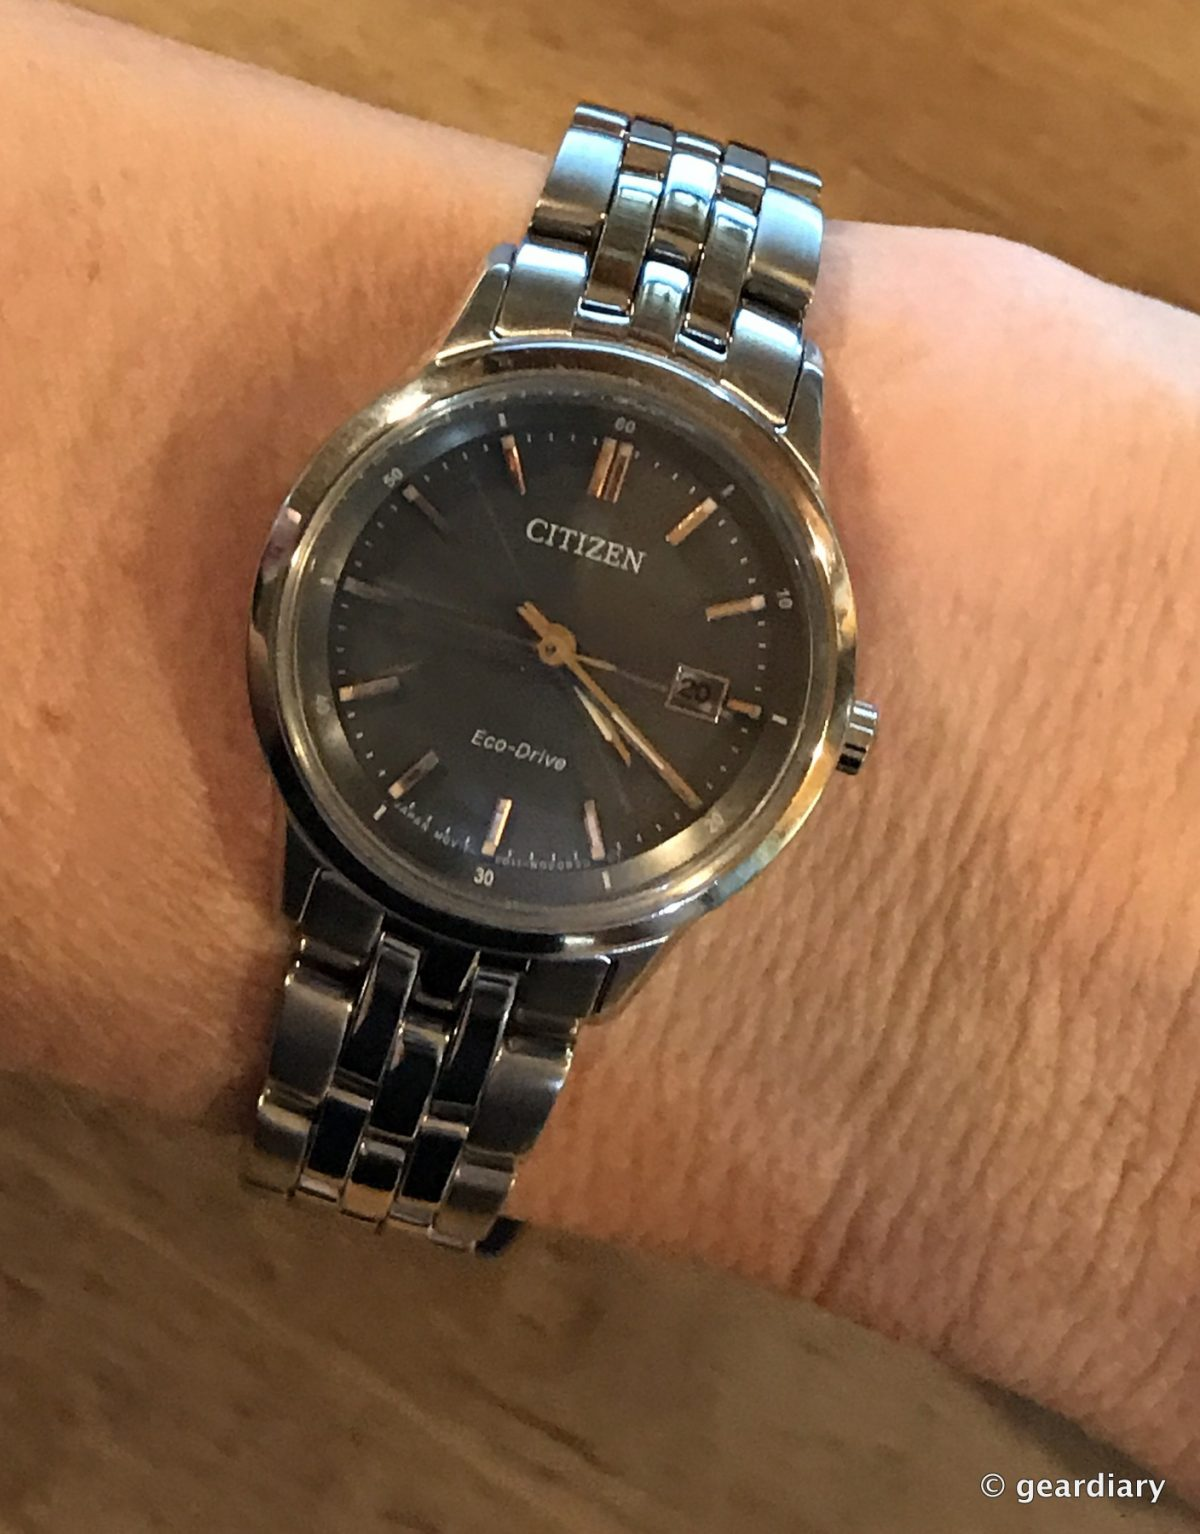 The Citizen Sapphire Eco-Drive Watch Review  Geek Cred in a Not So